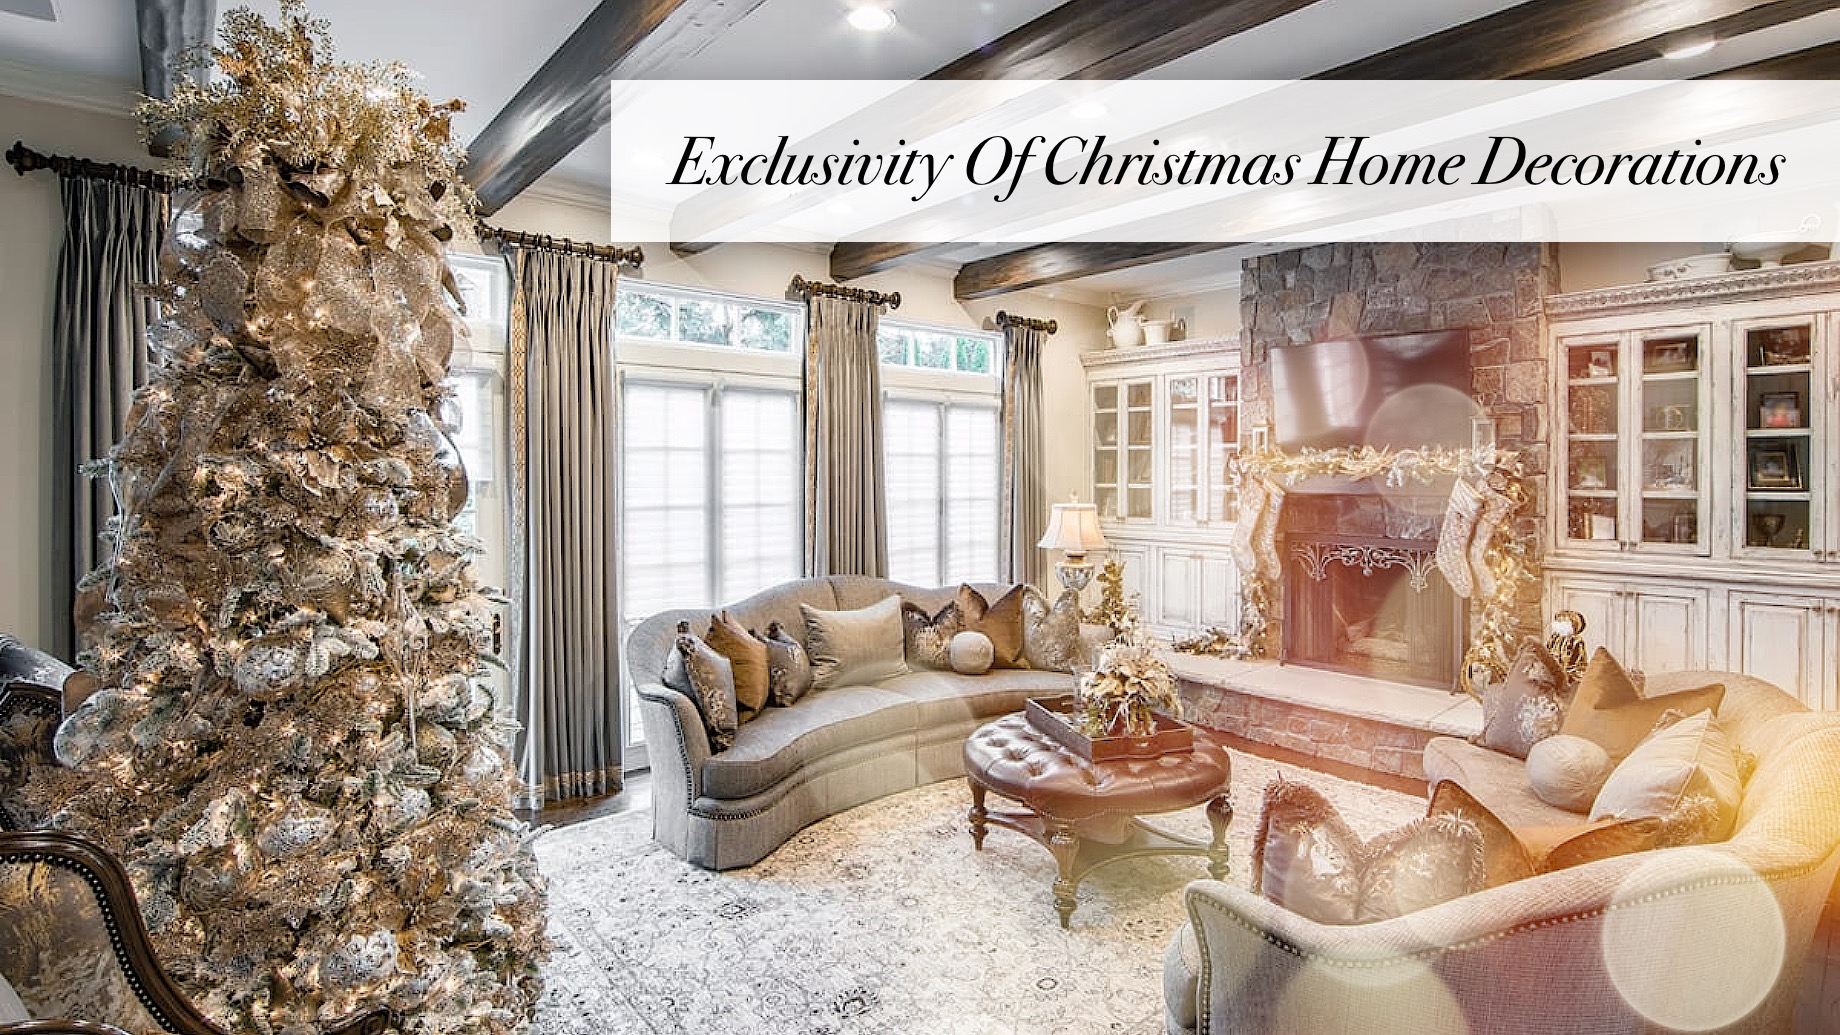 Exclusivity Of Christmas Home Decorations